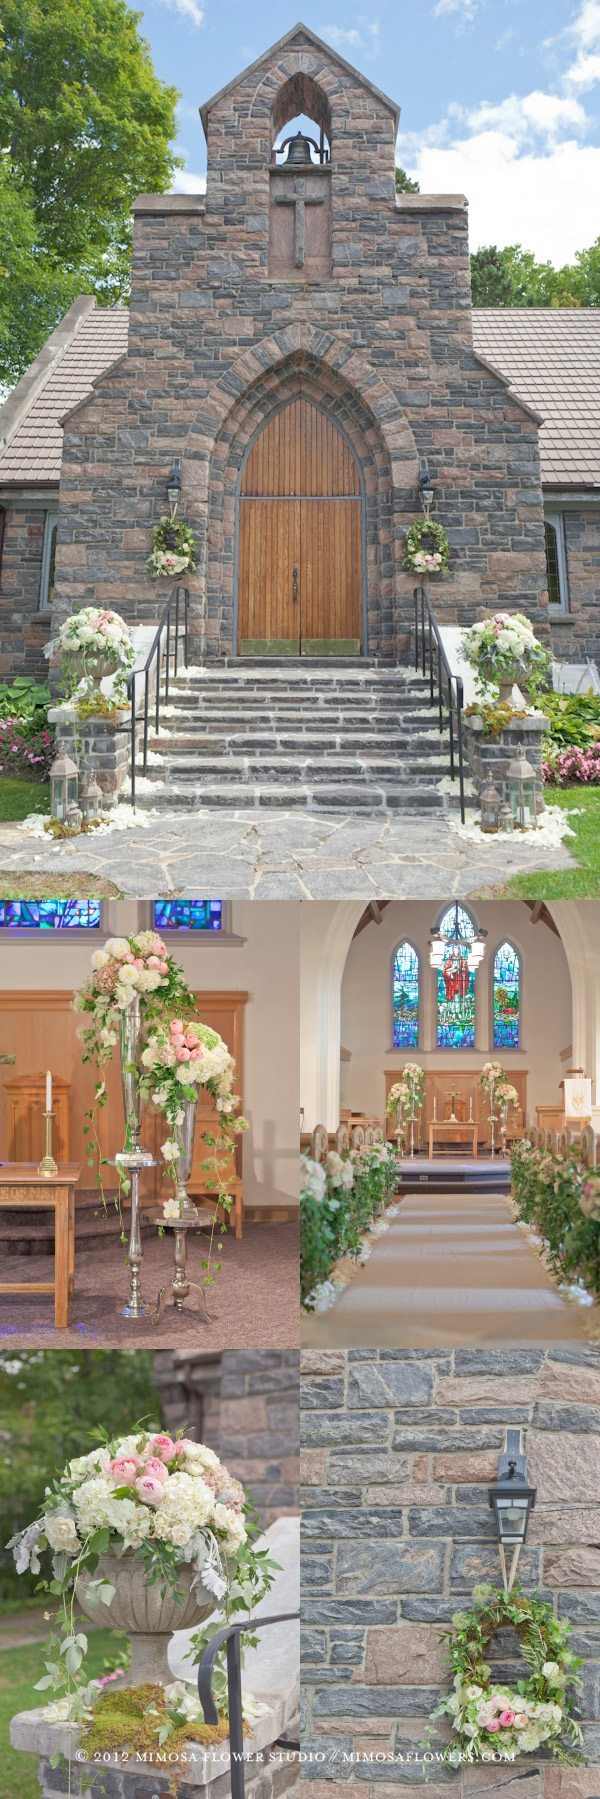 Muskoka Wedding Ceremony - Windermere United Church